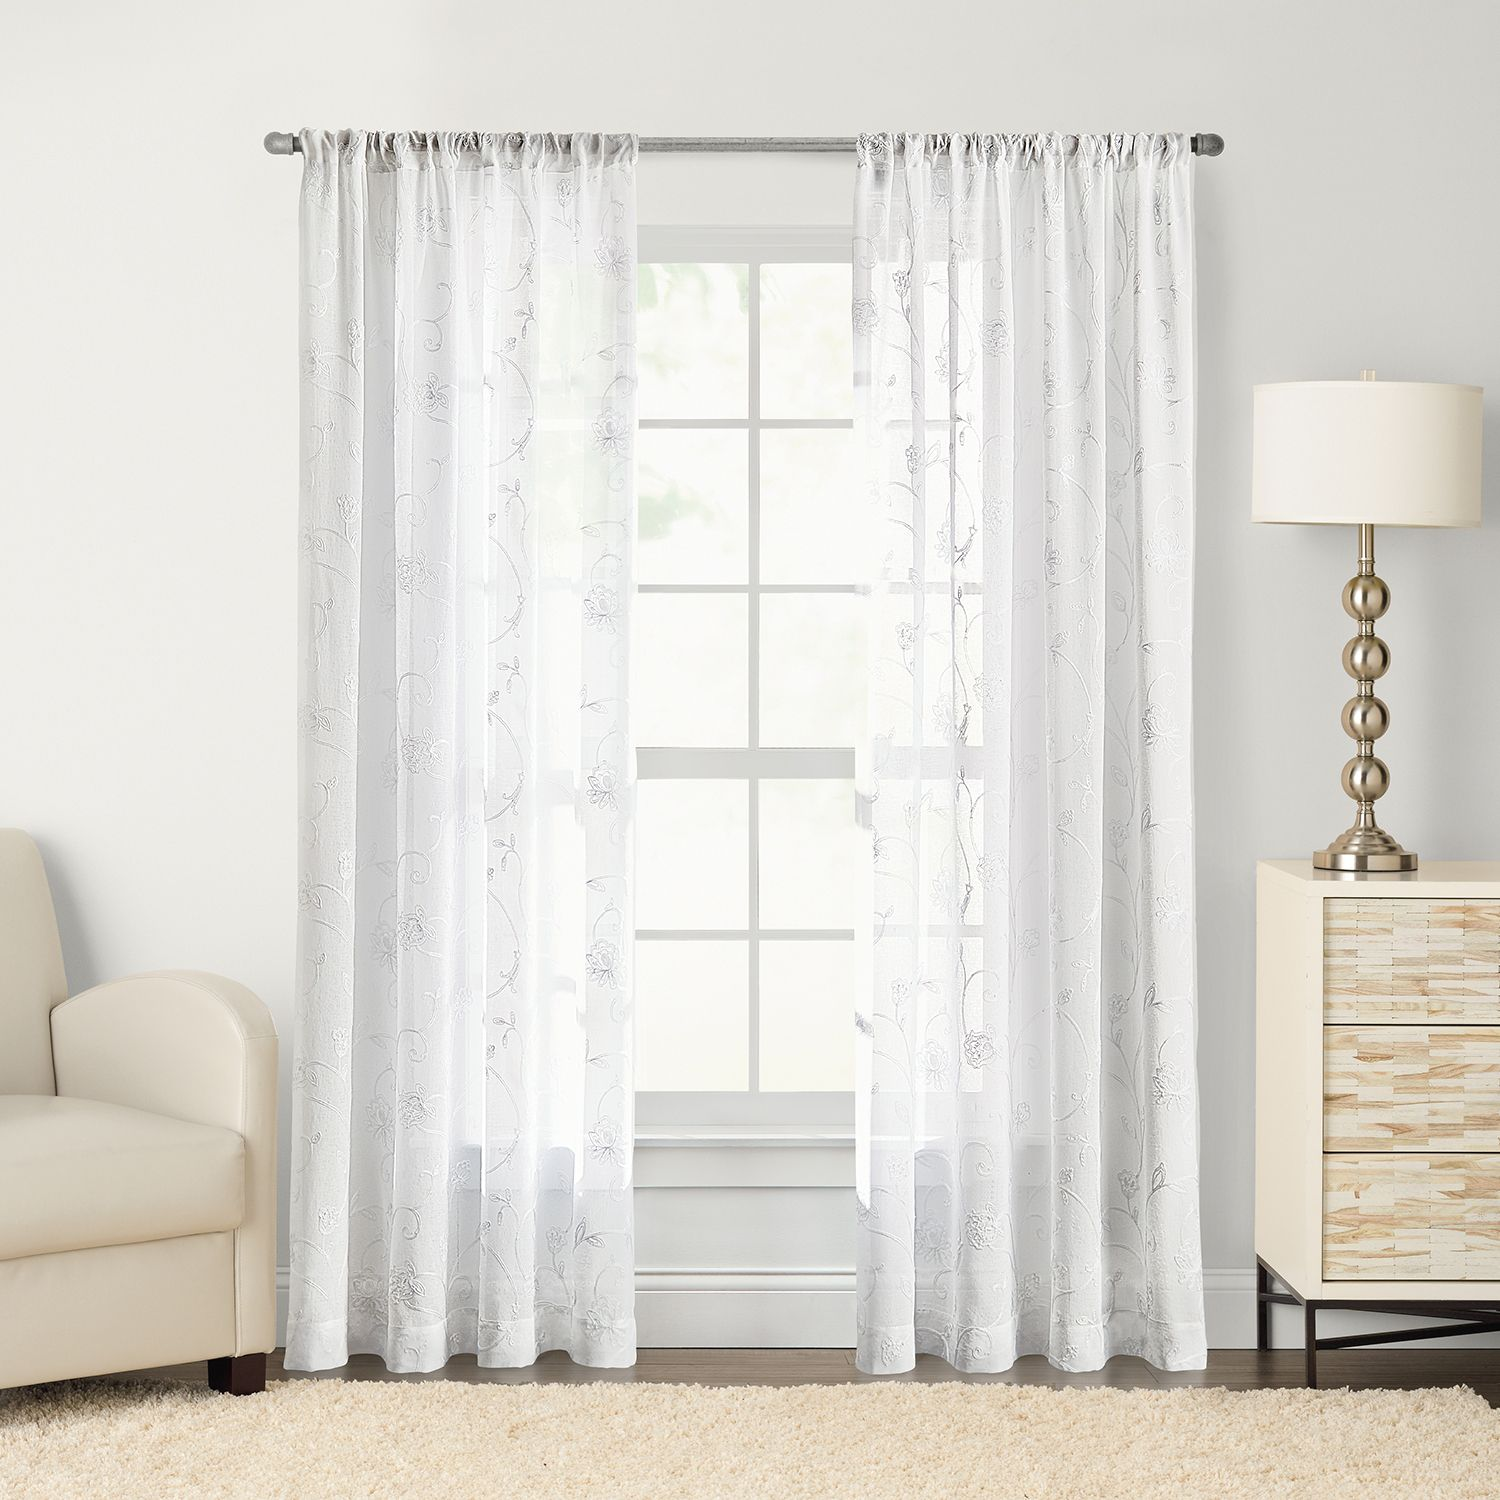 Kohls Sheer Curtains